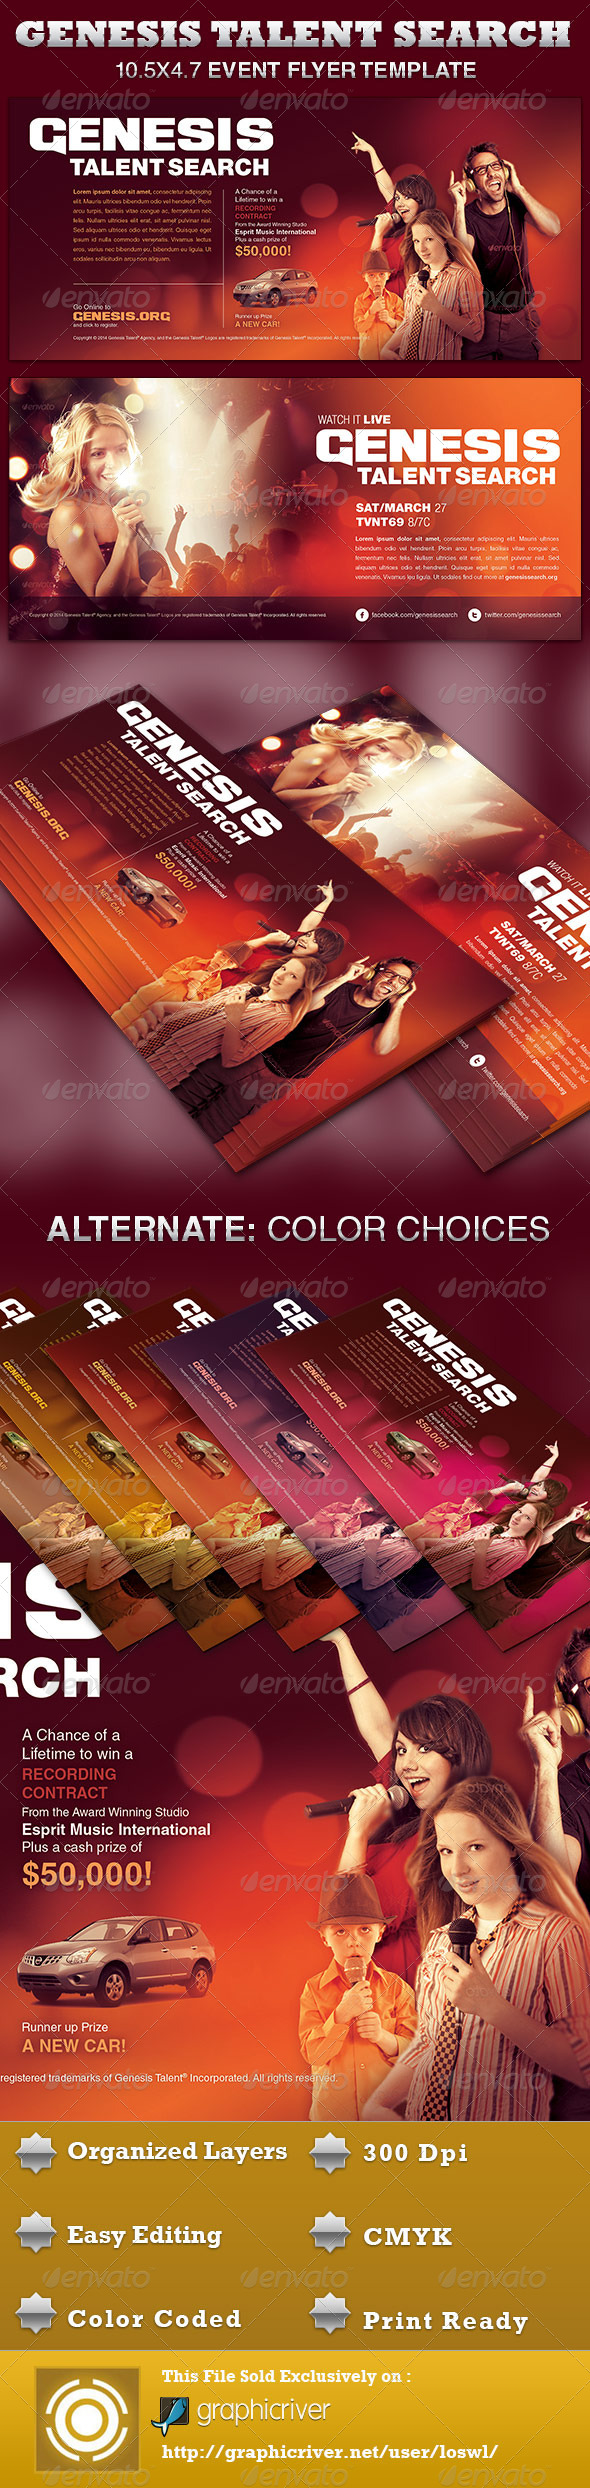 GraphicRiver Genesis Talent Search Event Flyer Template 4311359